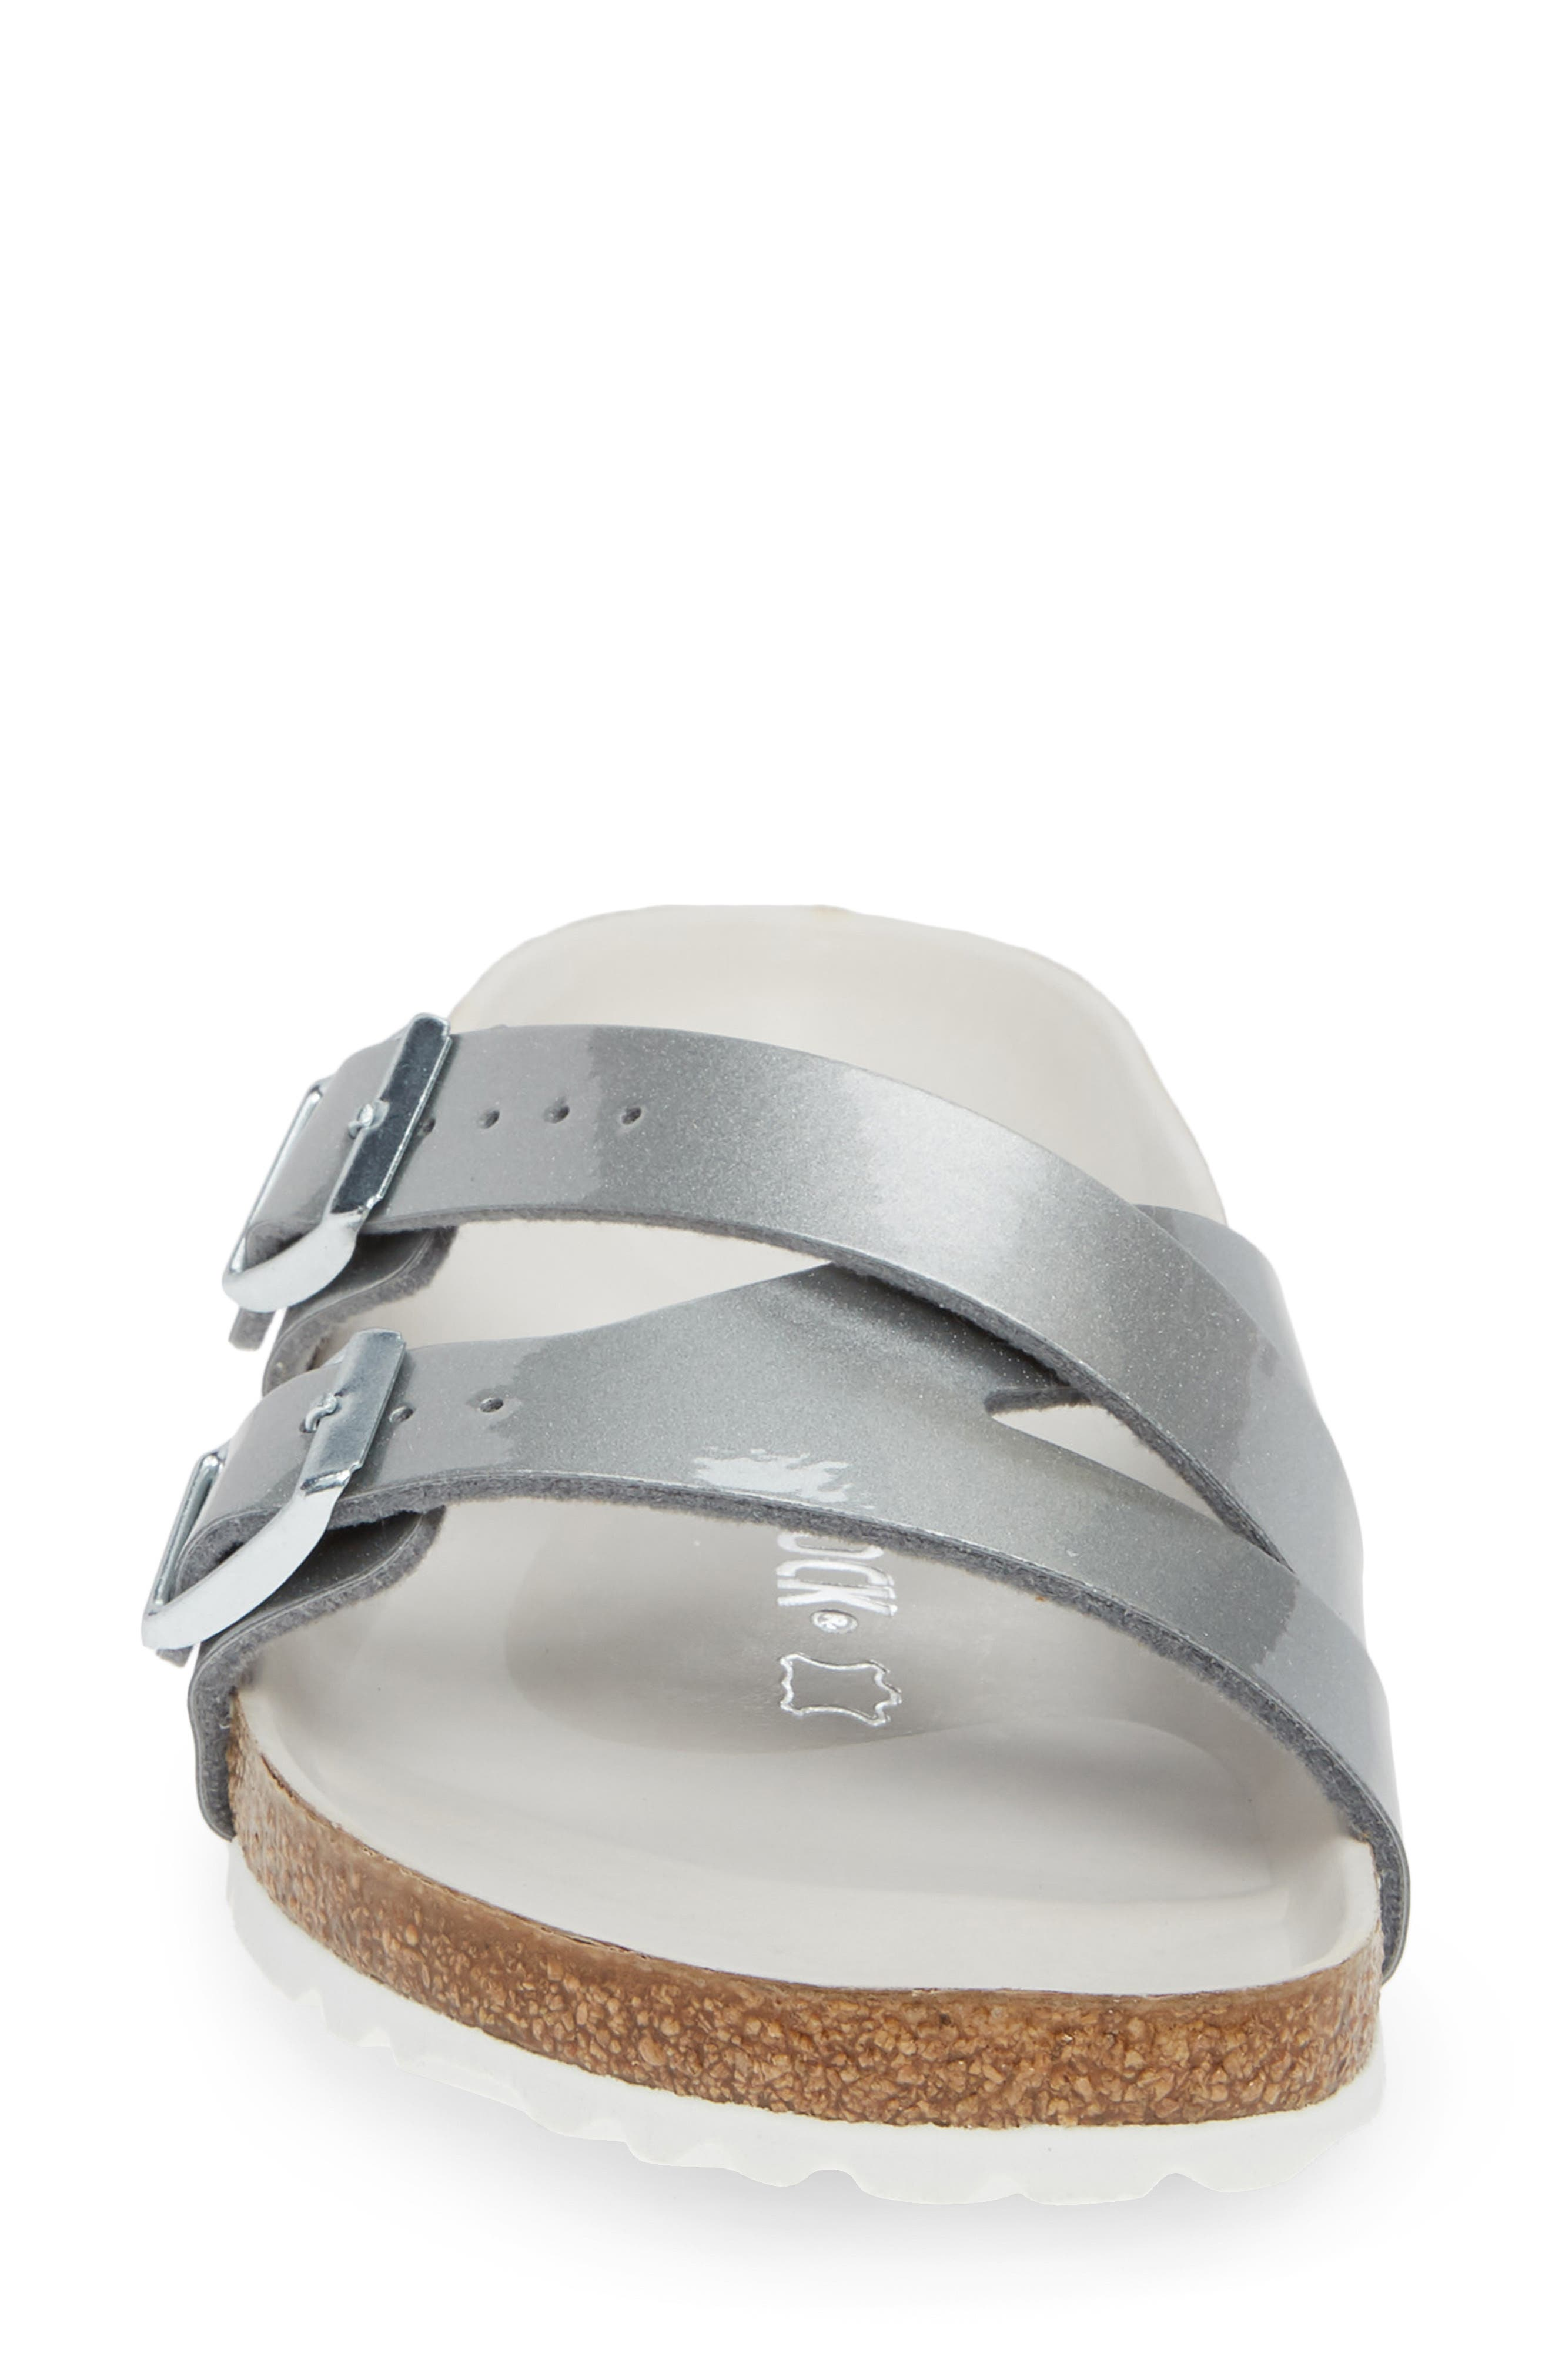 BIRKENSTOCK,                             Yao Metallic Slide Sandal,                             Alternate thumbnail 4, color,                             METALLIC SILVER